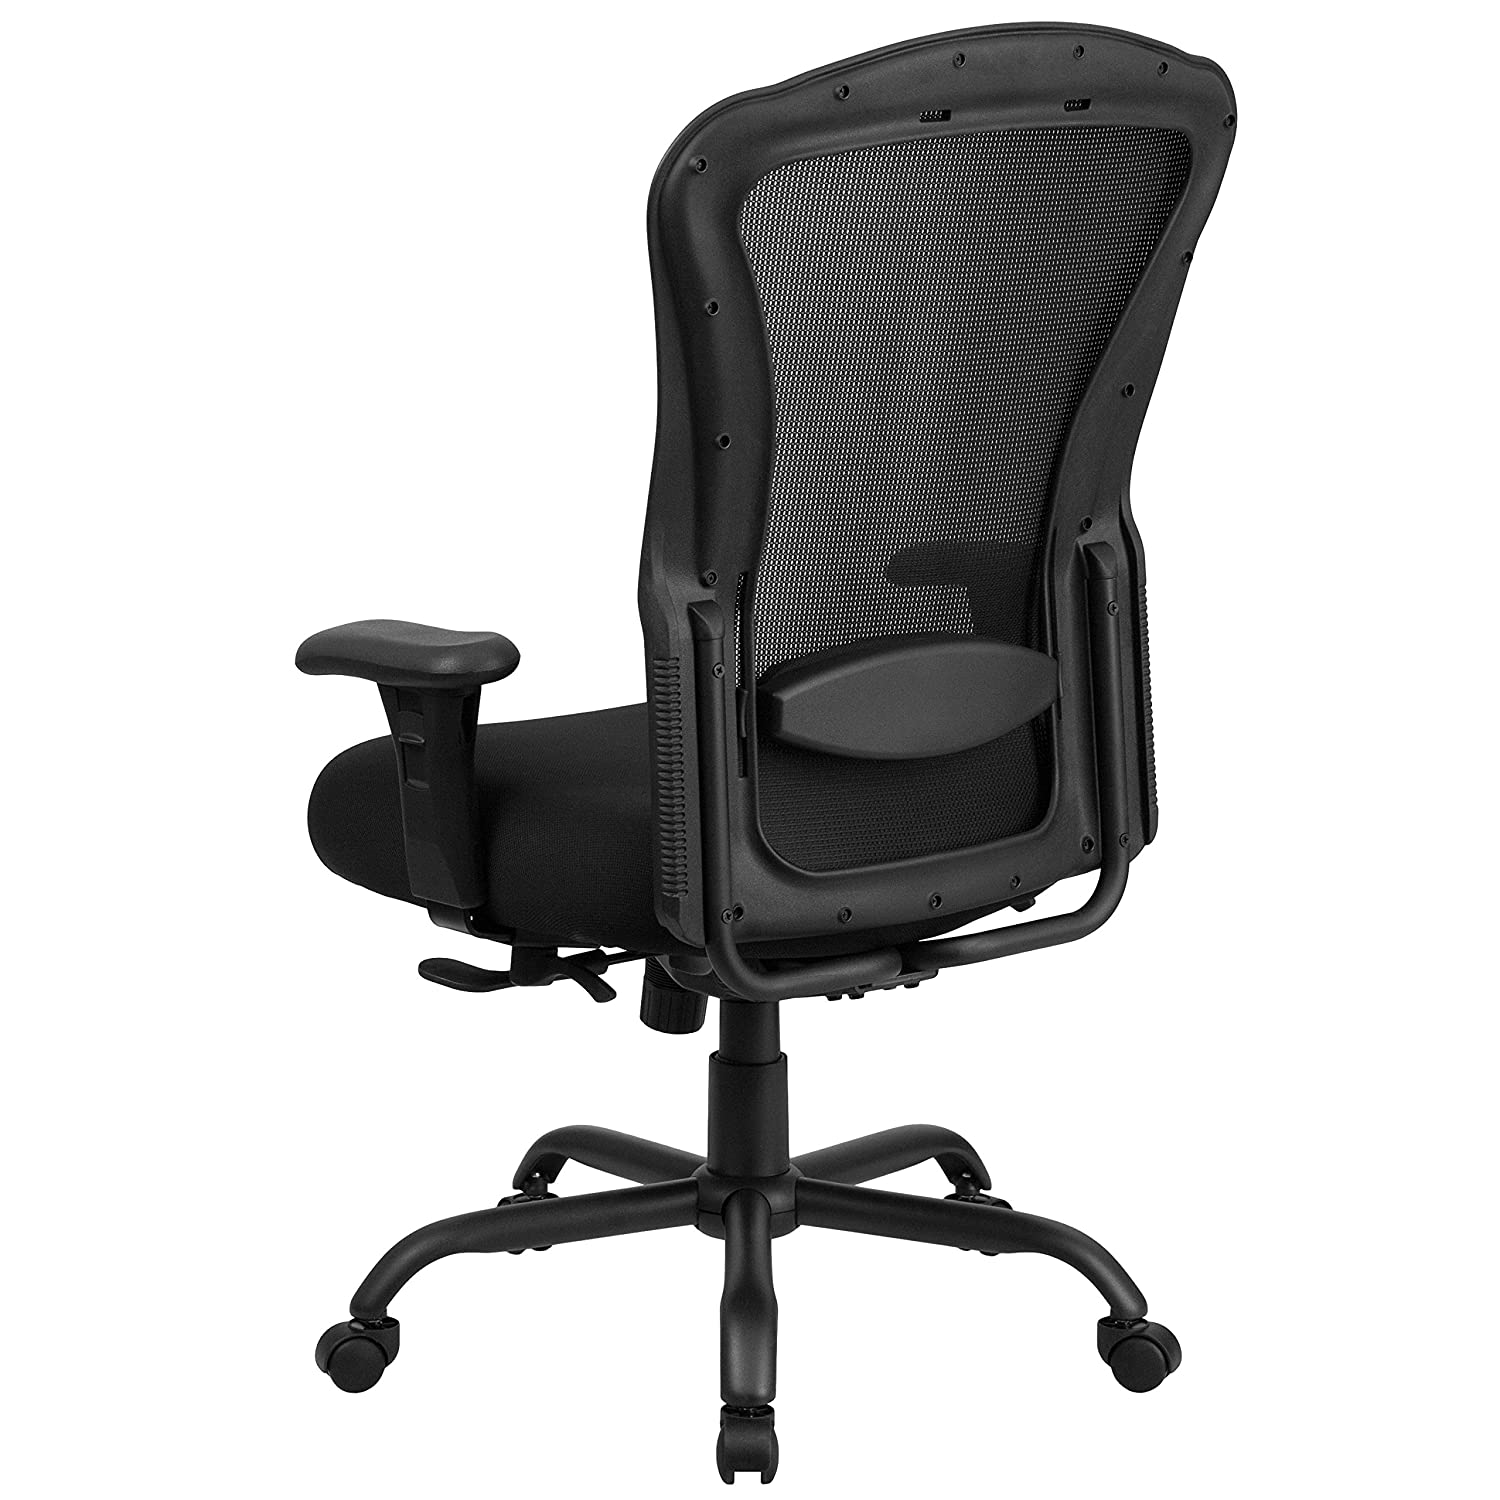 Office Furniture Conference Chairs Computer Desk Chair Comfort Swivel Fabric Home Office Task Chair Suitable For Computer Working And Meeting And Reception Place